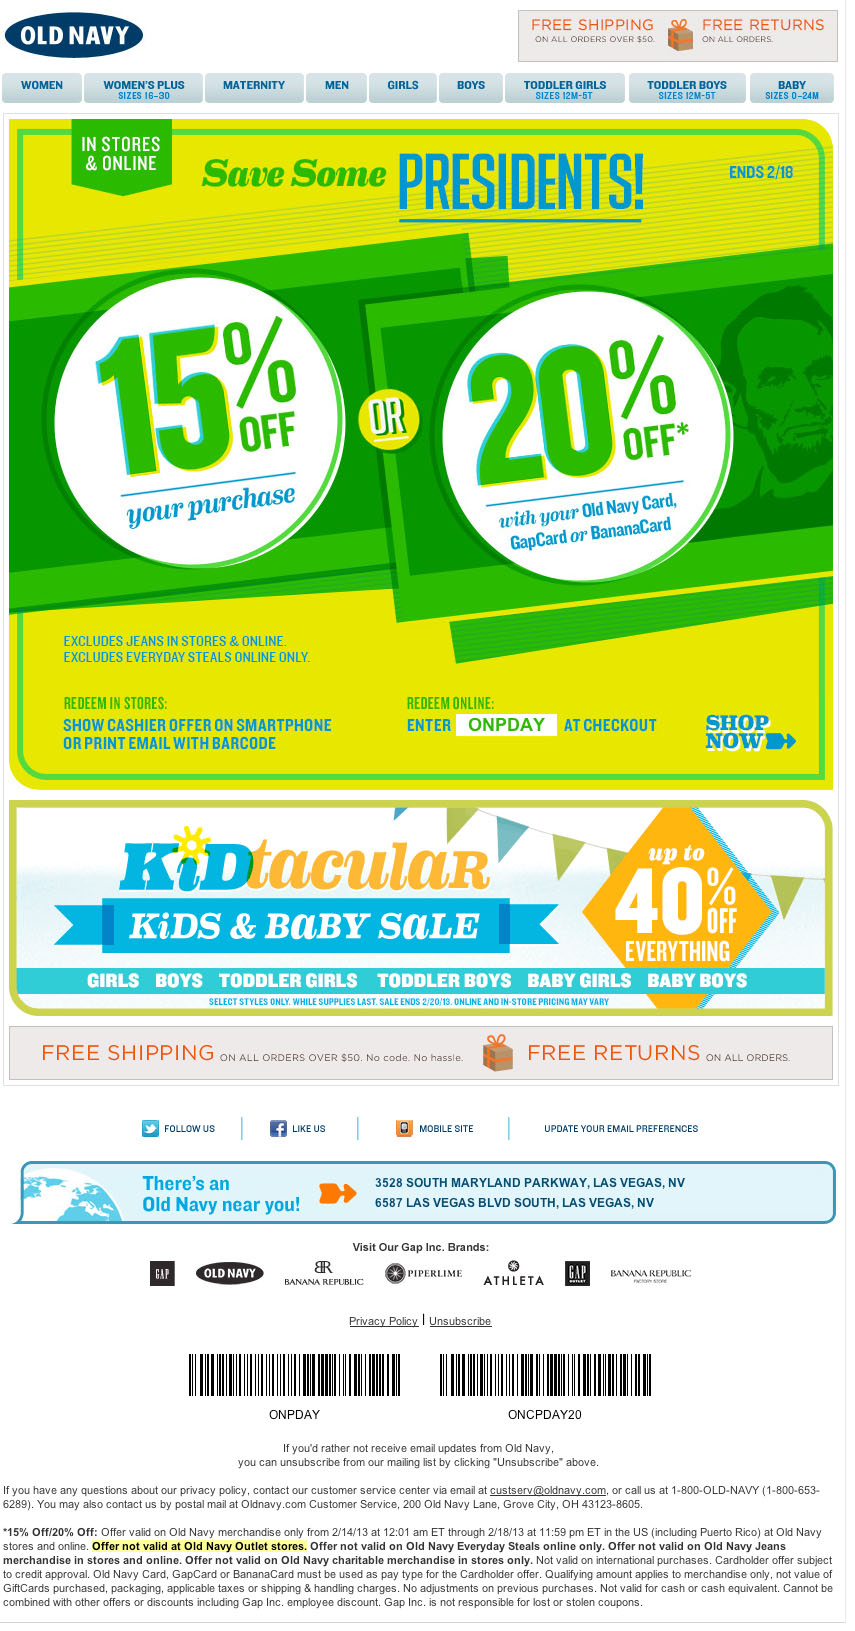 Printable old navy coupons feb 2018